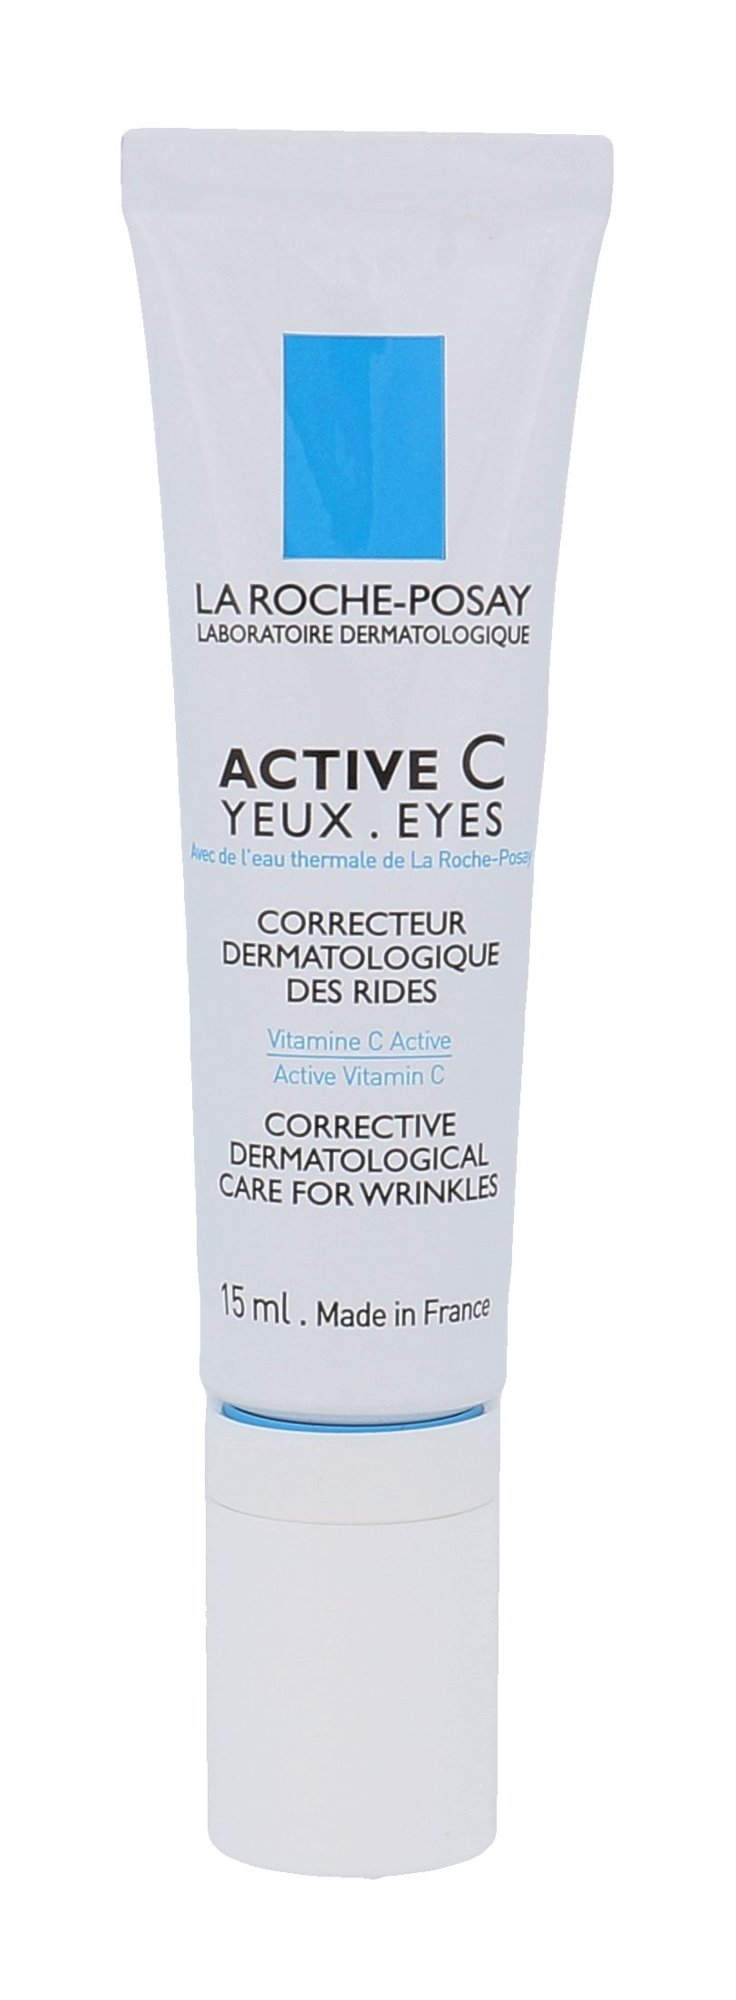 La Roche-Posay Active C Cosmetic 15ml